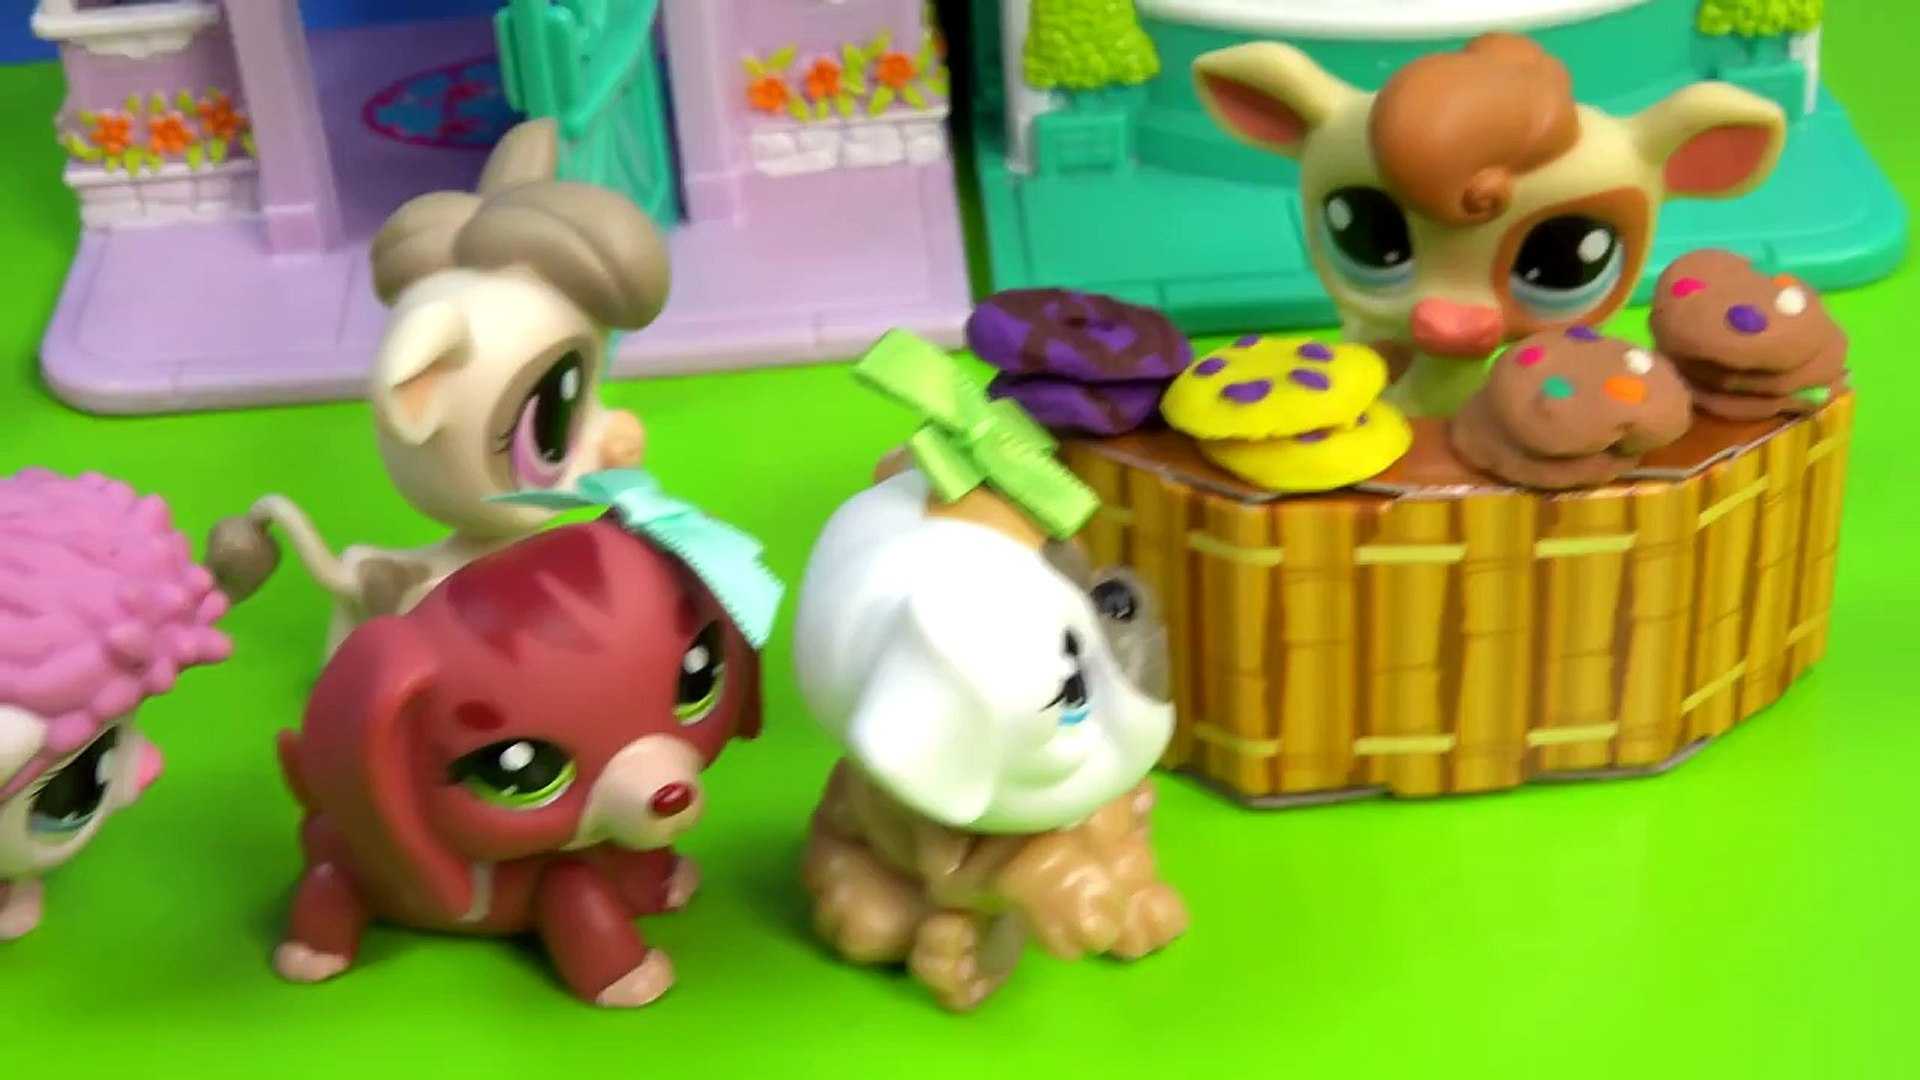 LPS Cookie Sale Kreams Ice Creamery Littlest Pet Shop Part 15 Video Playing Series Cookie